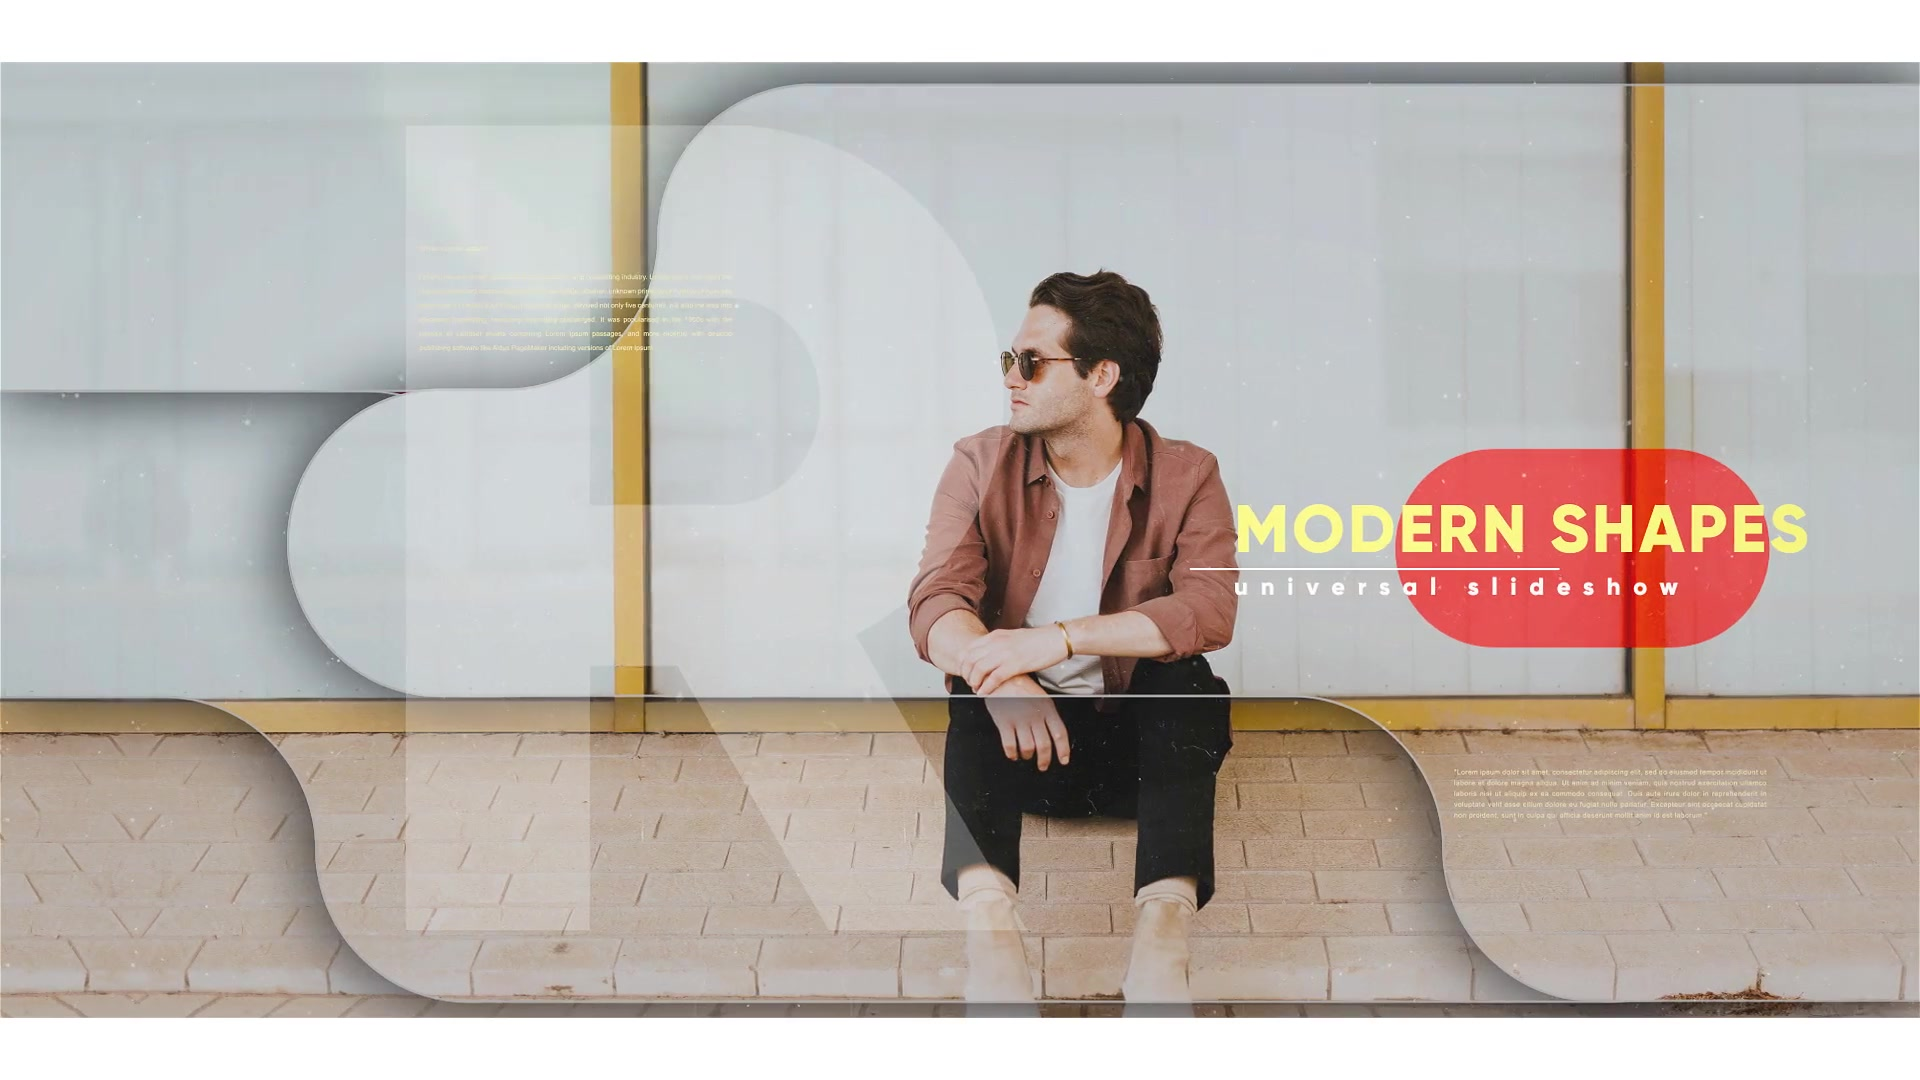 Modern Shapes Universal Slideshow - Download Videohive 21708078